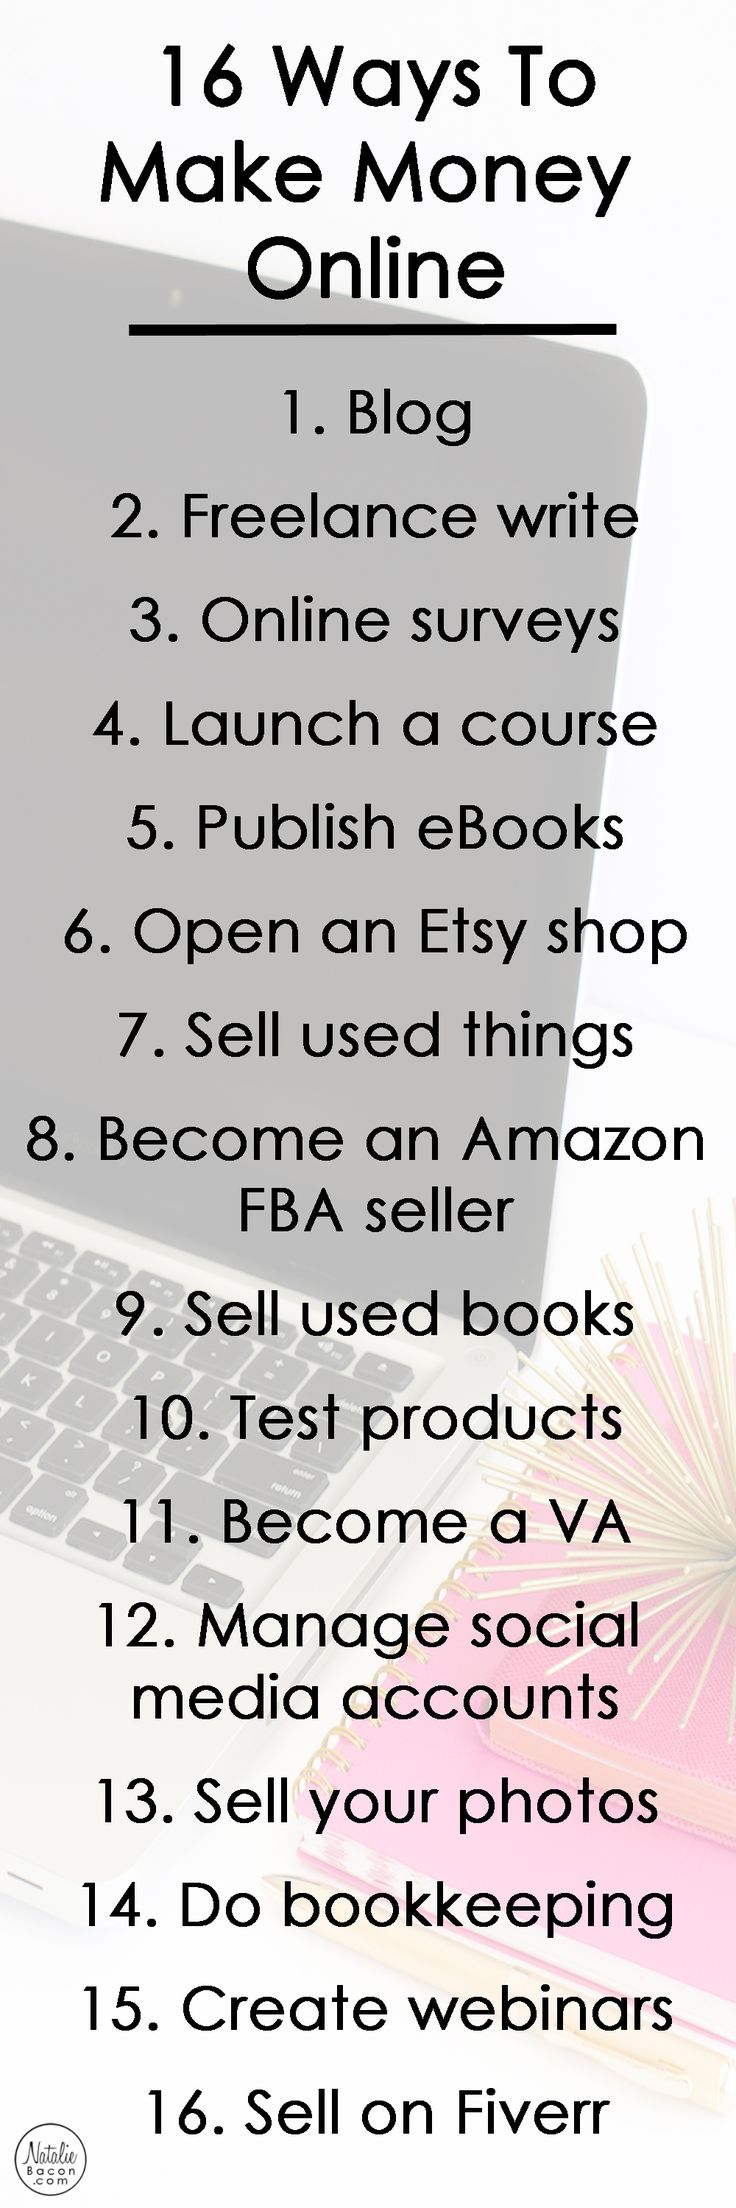 16 ways to make money online by Natalie Bacon